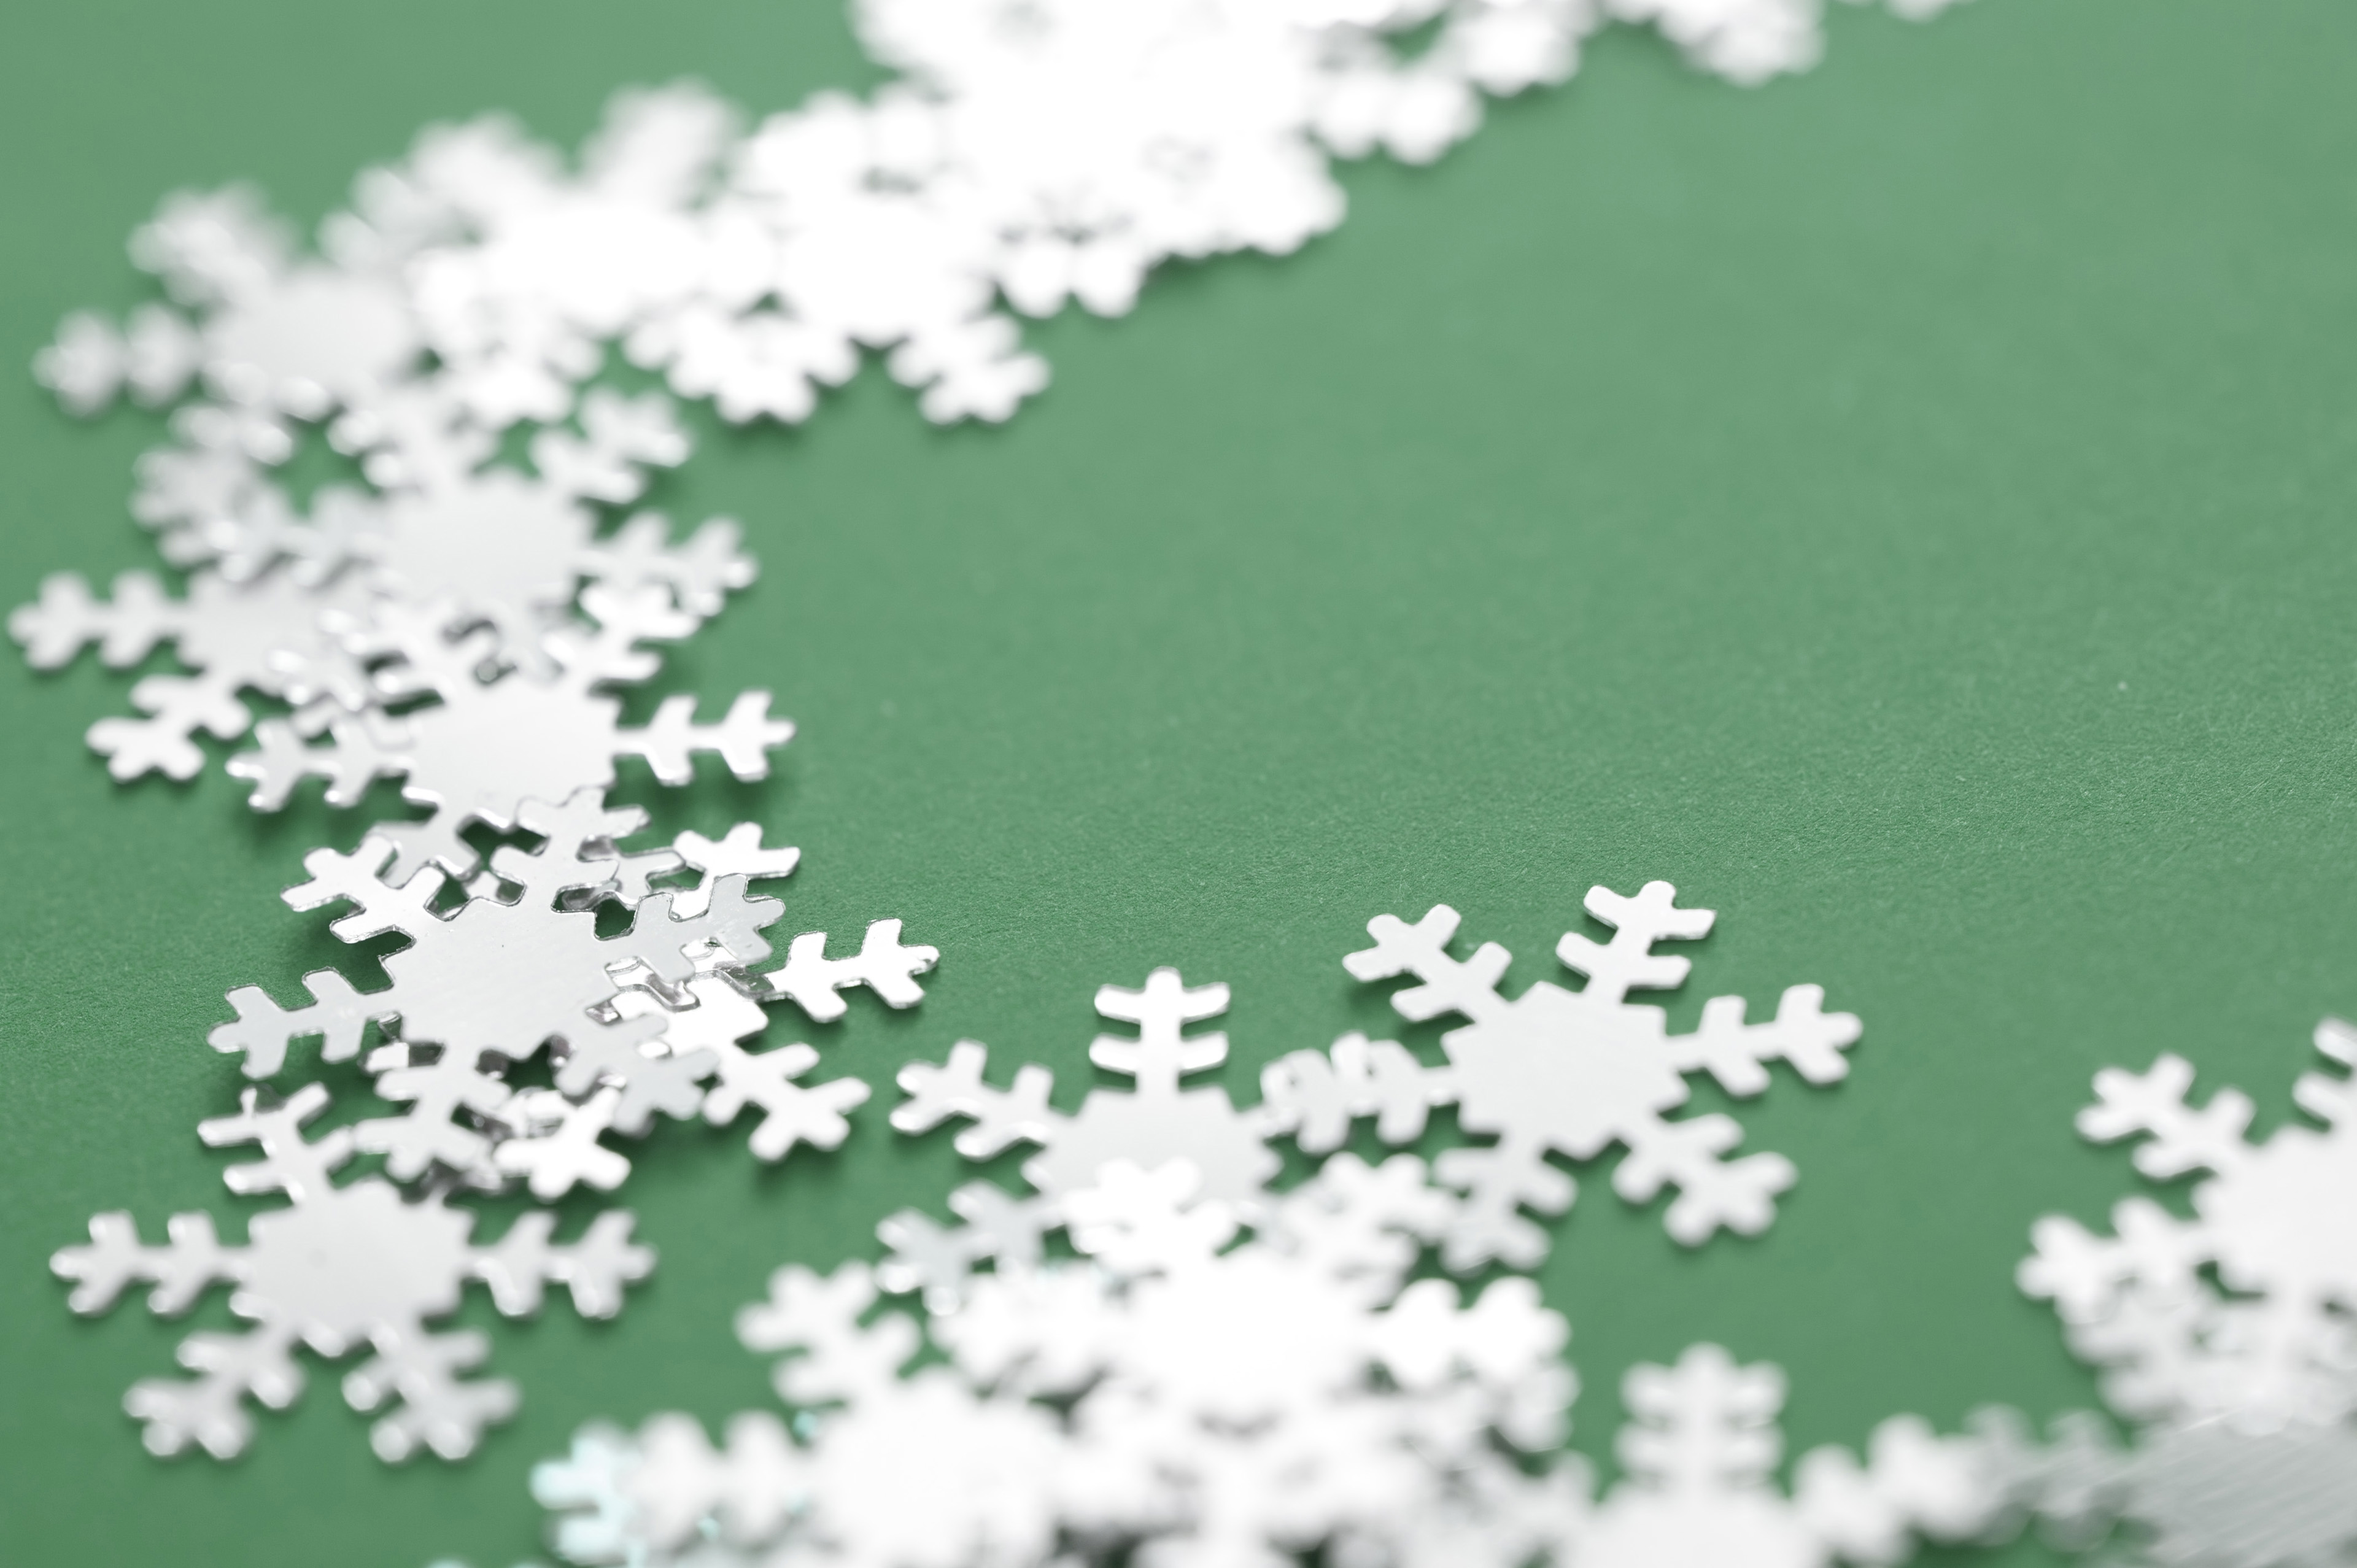 Christmas background of winter snowflakes winding across a green background with shallow dof to the centre and copyspace for your seasonal greeting